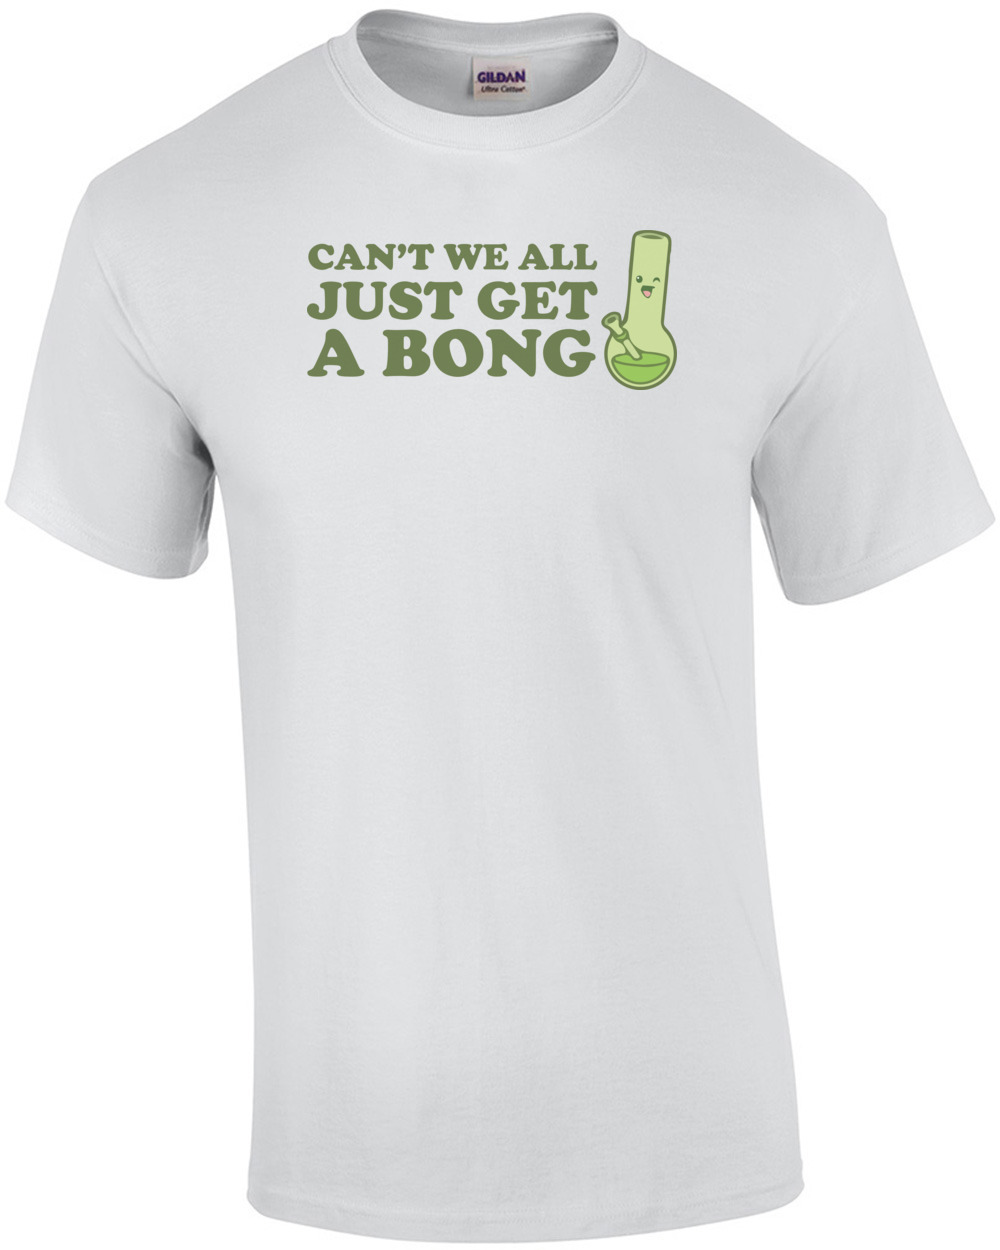 Can\'t we all just get a bong? Weed T-Shirt